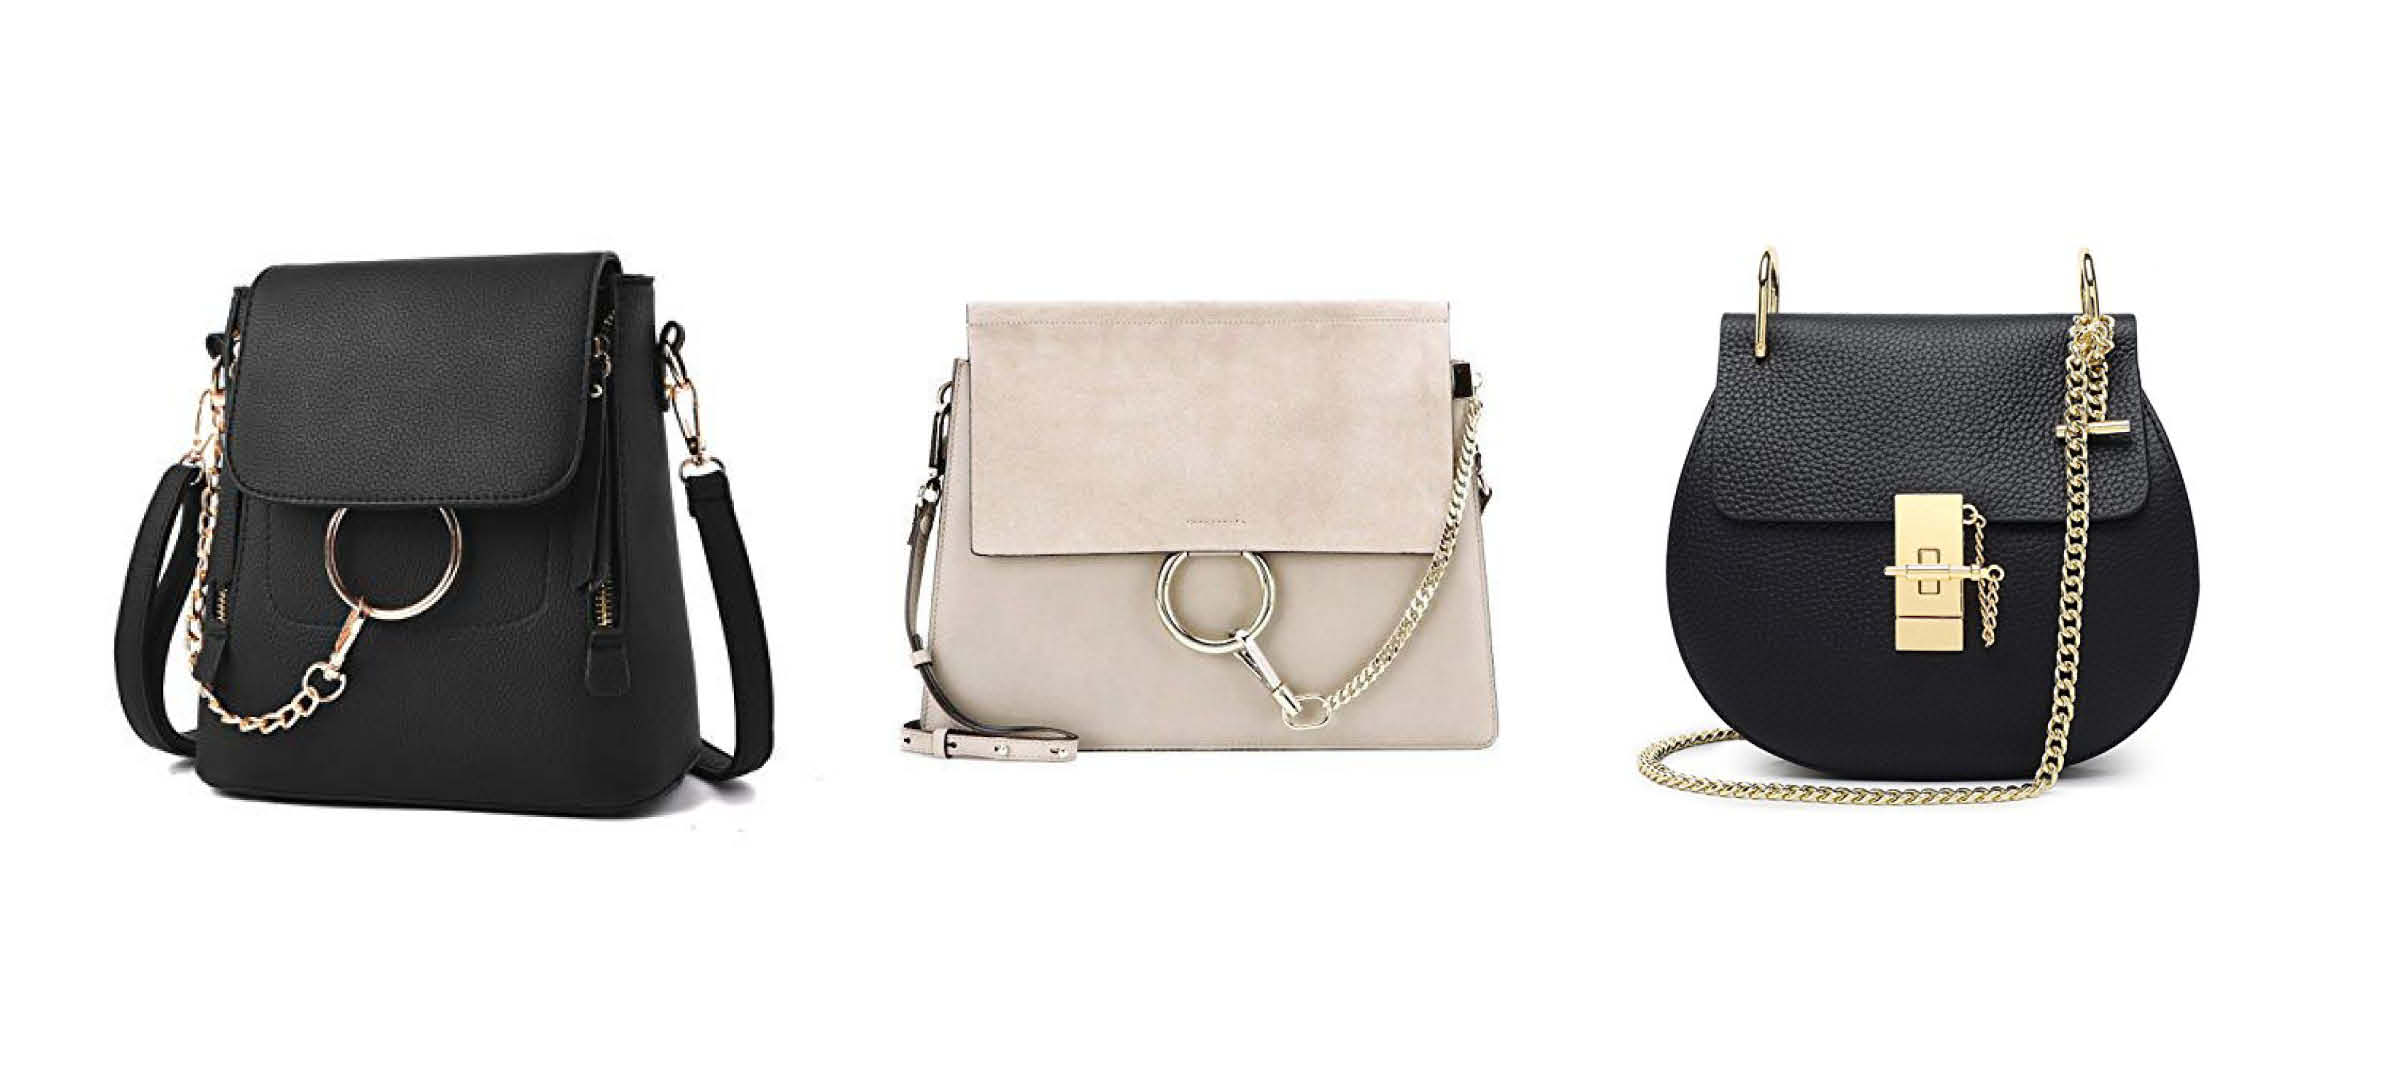 6c57f57ceced Chloé dupes on Amazon that won't break the bank. Gorgeous Faye, Marcie